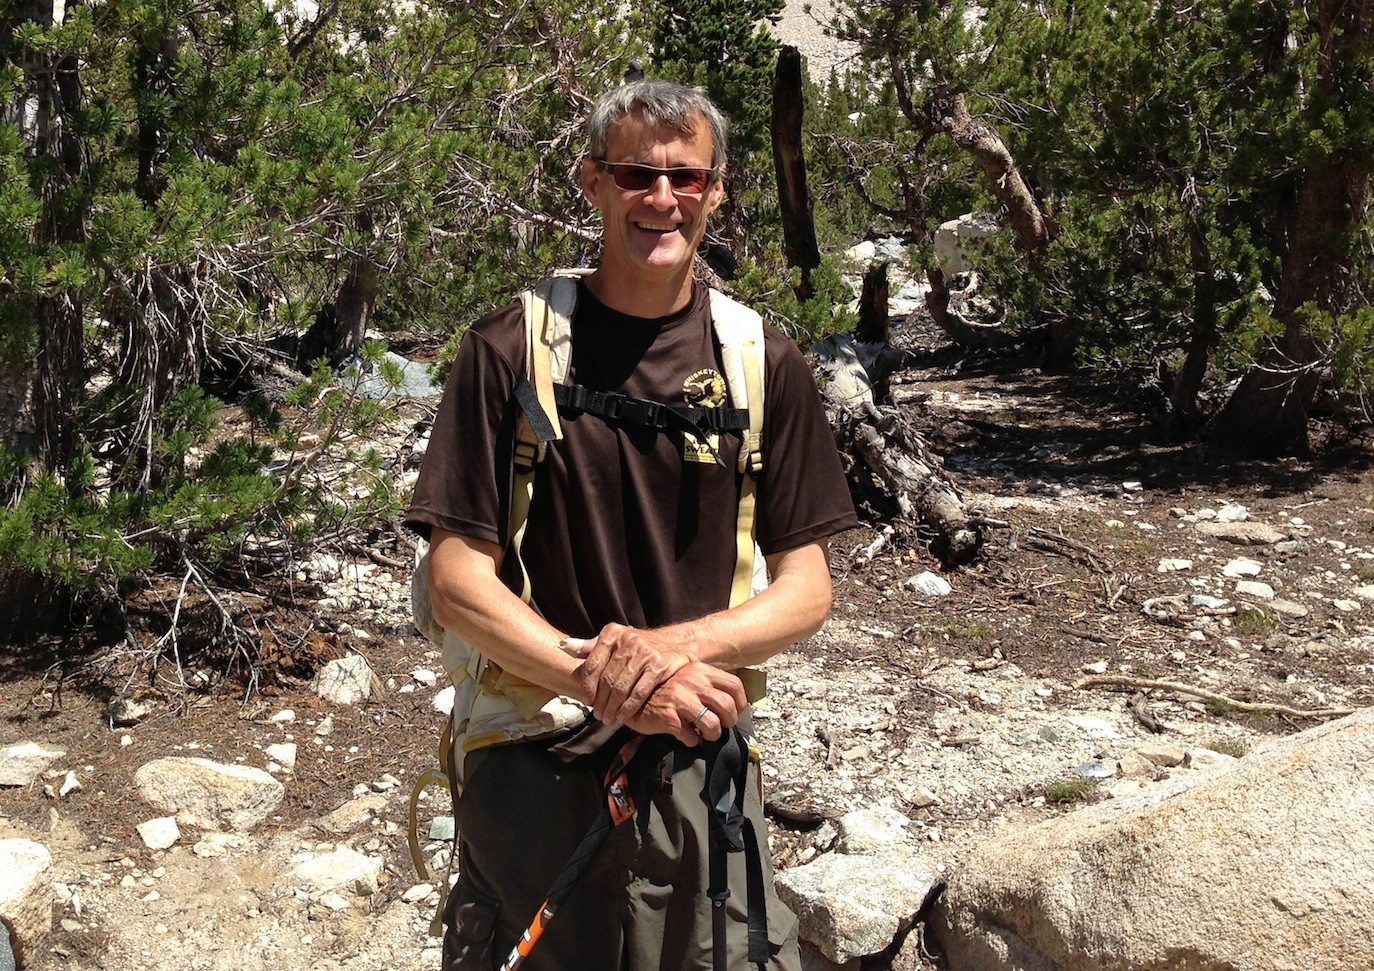 JMT nobo: Craig relaxes after he's done hiking by climbing peaks along the trail